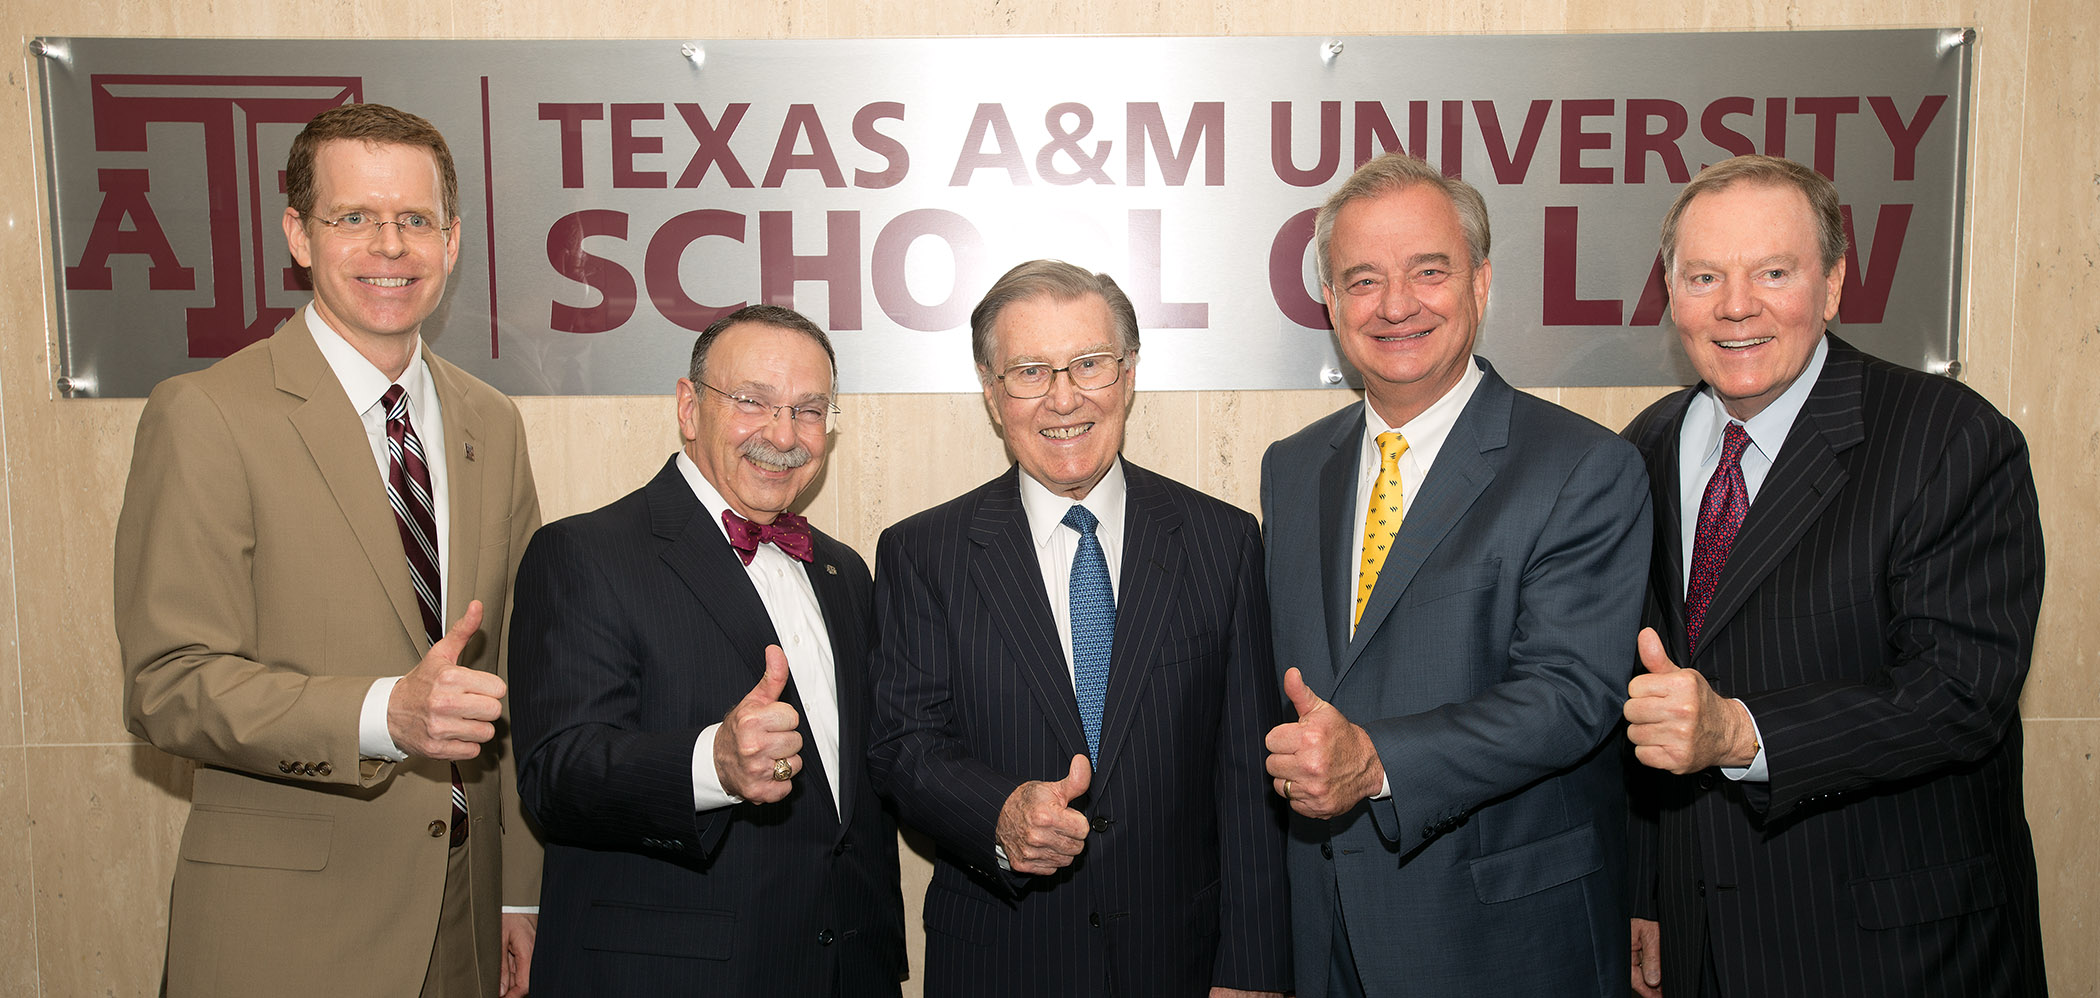 Announcement of acquisition of law school by Texas A&M University